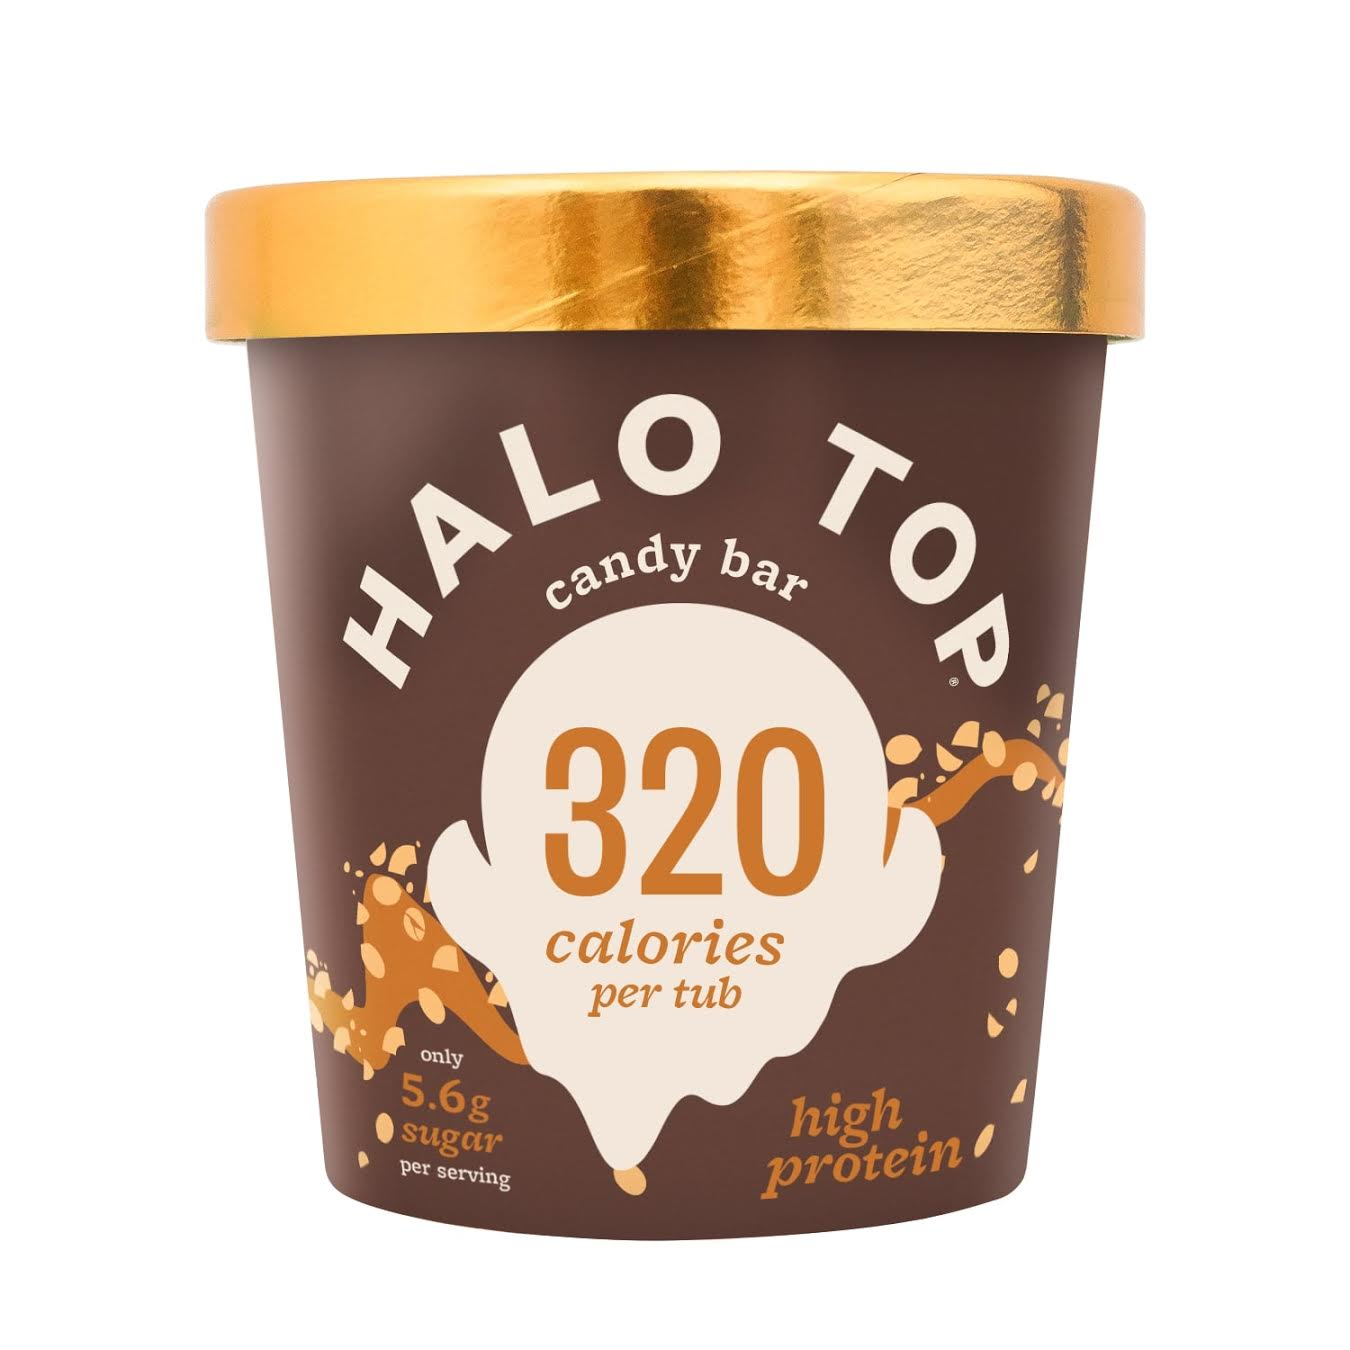 New Food Products, New Food Products ocado, best food products UK, top food products in the uk, best food products uk